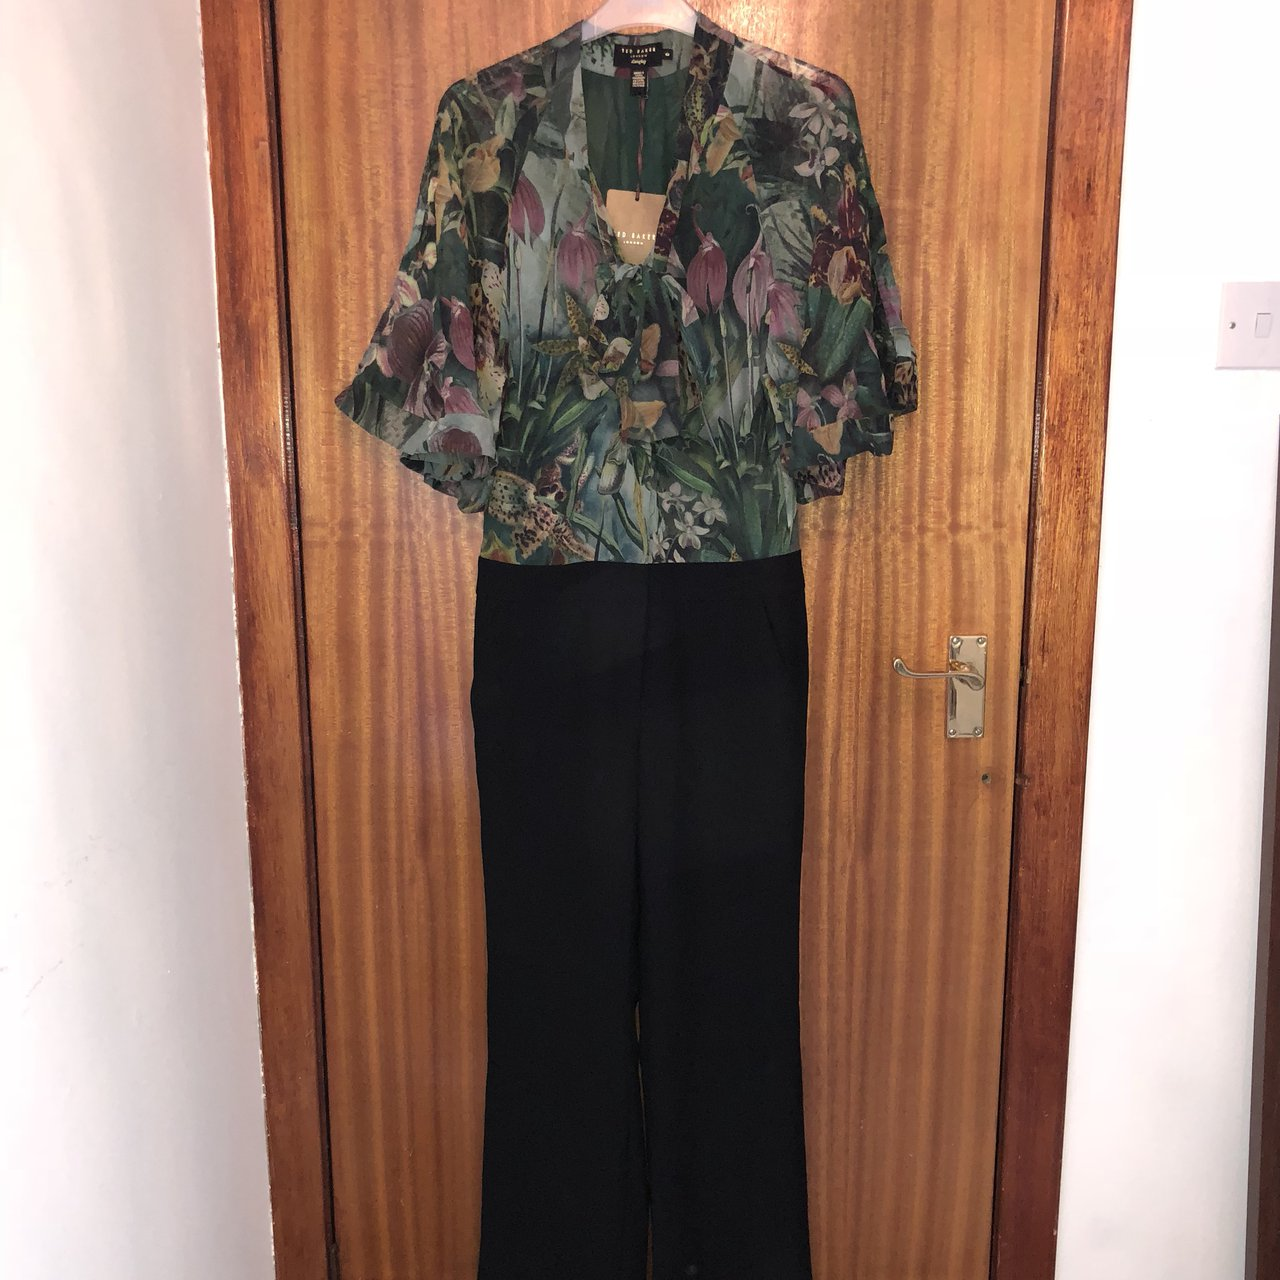 0ad13782728 New ted baker jumpsuit never worn. Size 0 would fit a size - Depop